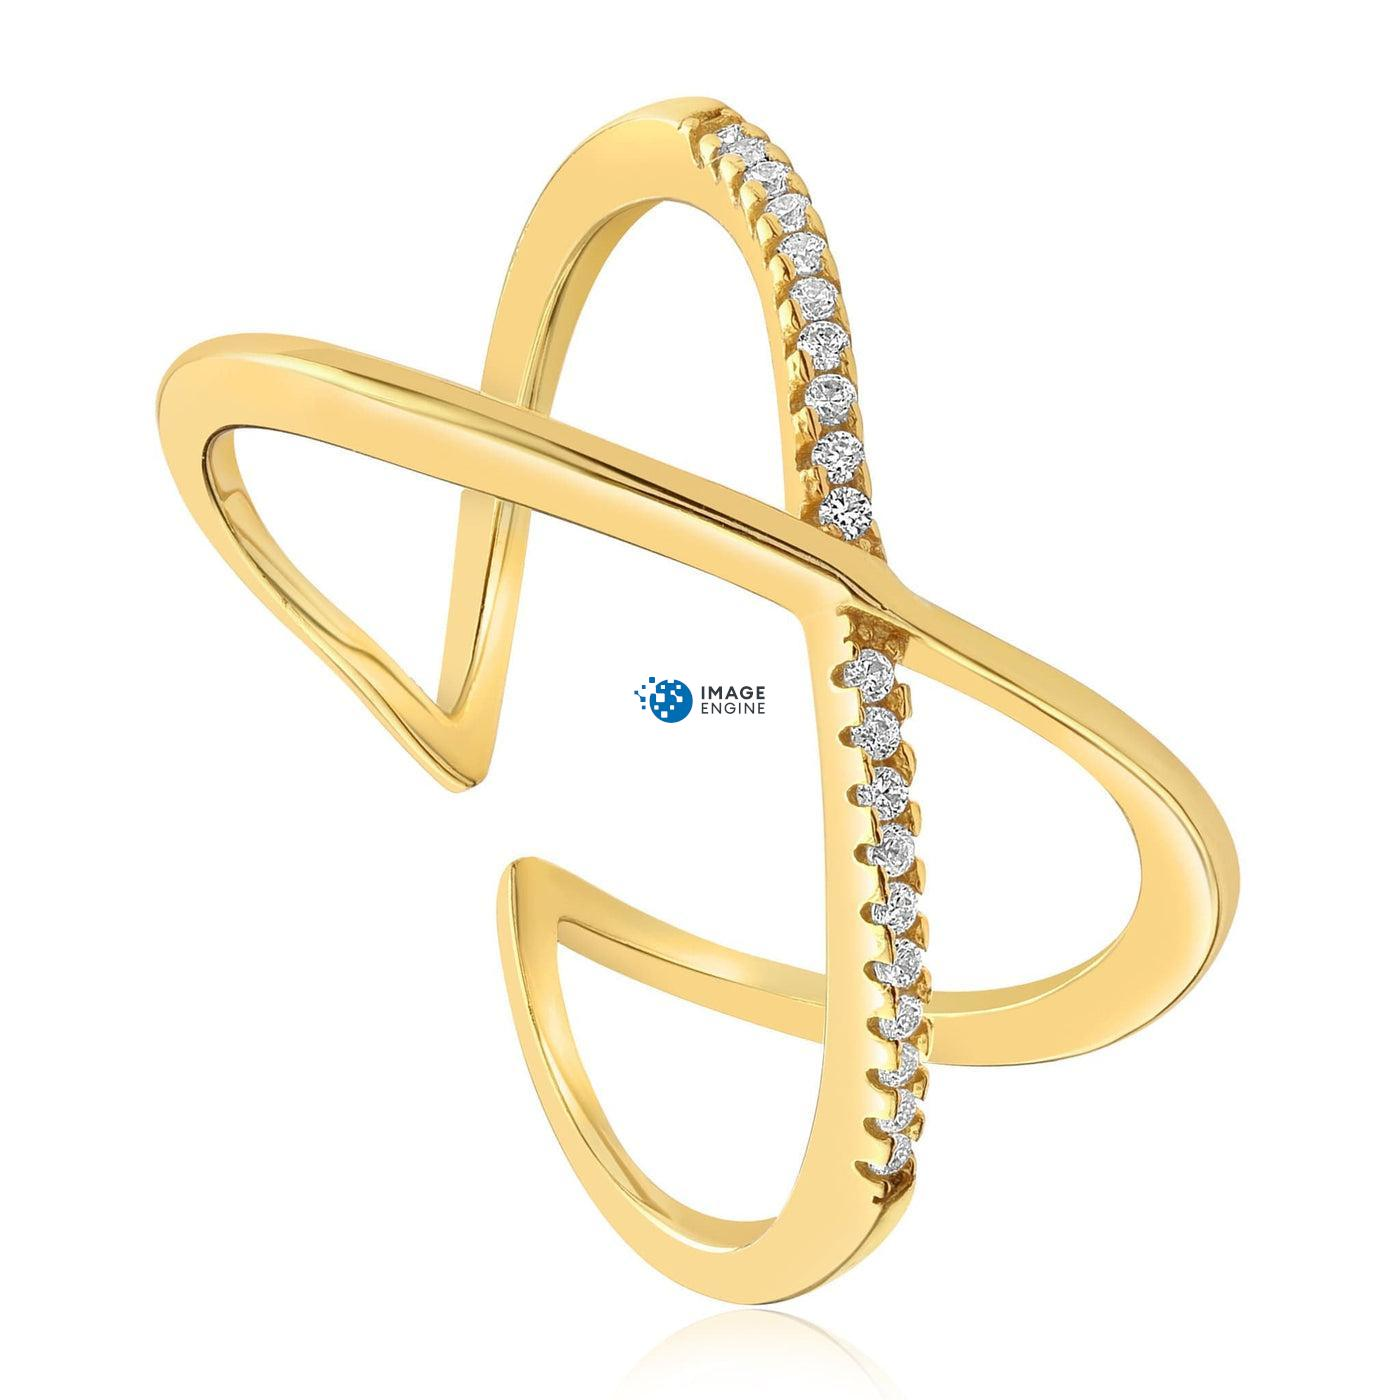 Nadia X Infinity Ring - Three Quarter View - 18K Yellow Gold Vermeil